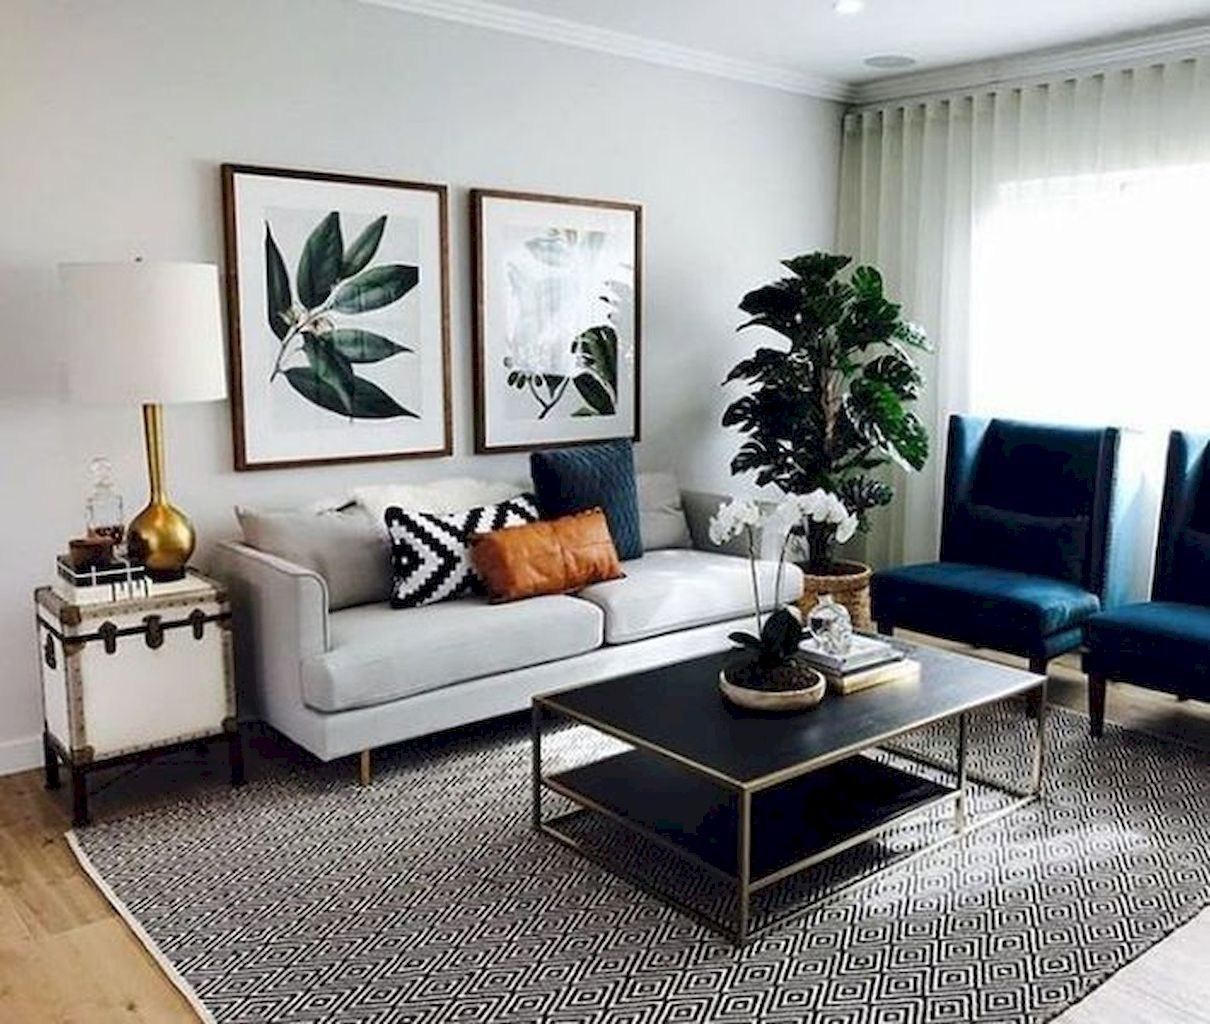 99 Creative Living Room Design Ideas You Ll Want To Steal With Images Living Room Design Modern Living Room Decor Apartment Living Room Decor Modern